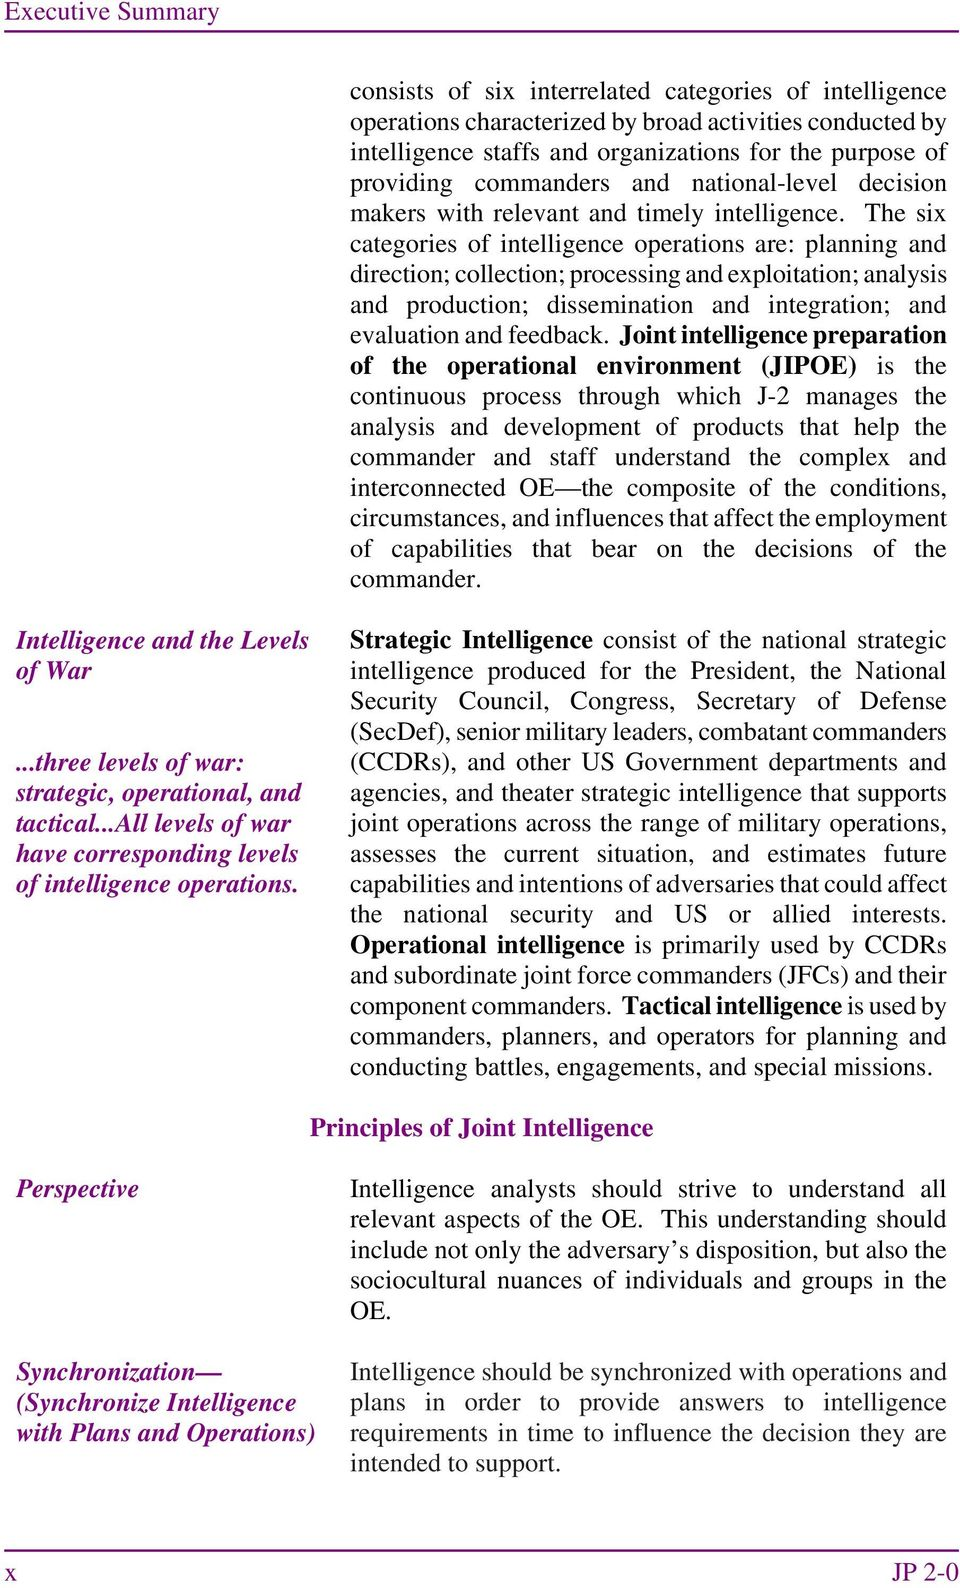 The six categories of intelligence operations are: planning and direction; collection; processing and exploitation; analysis and production; dissemination and integration; and evaluation and feedback.